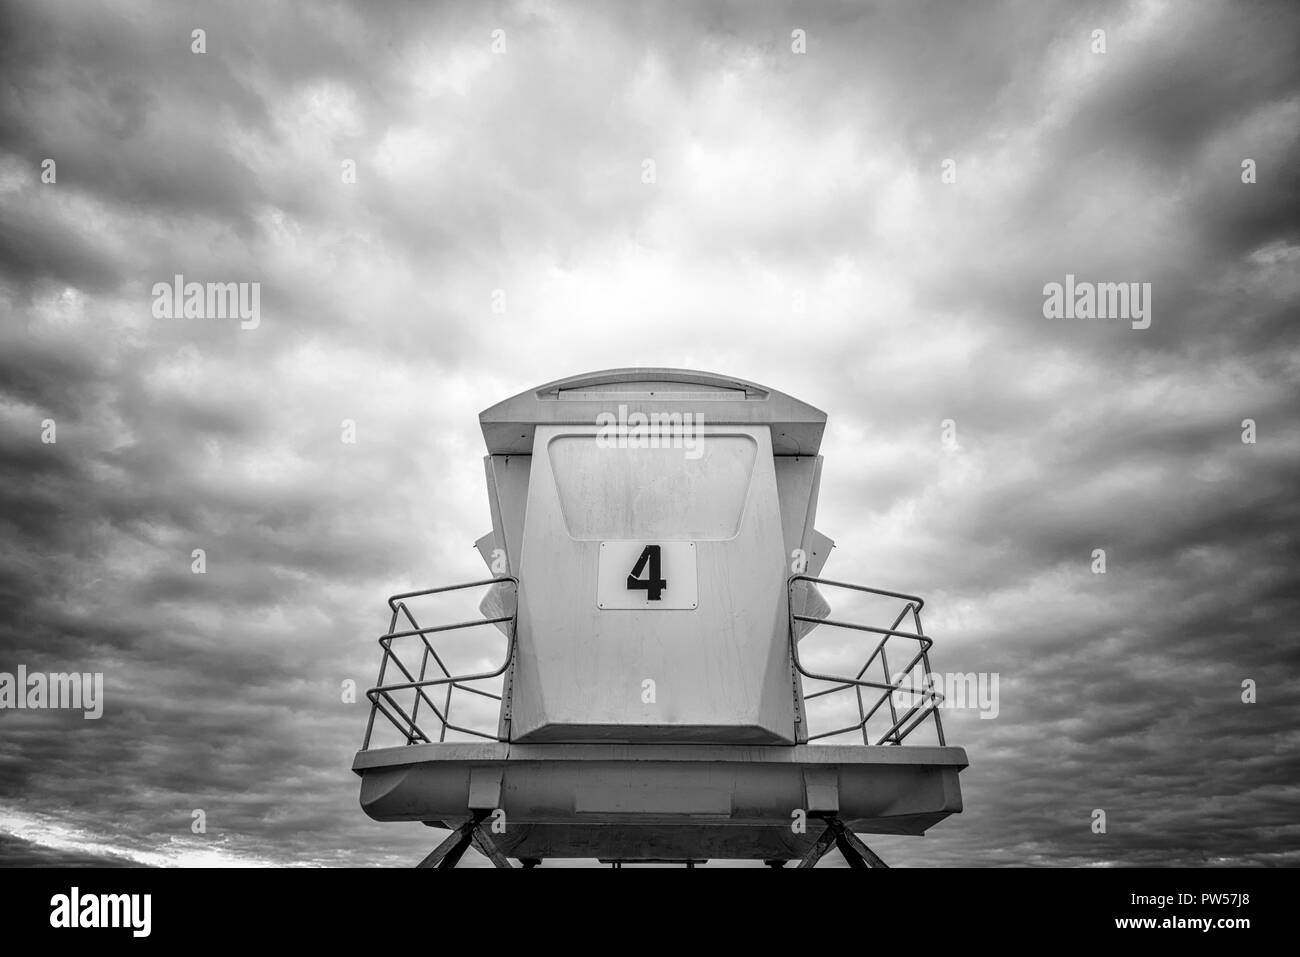 San Diego, California, USA. Close up of a lifeguard tower against a dramatic sky. - Stock Image